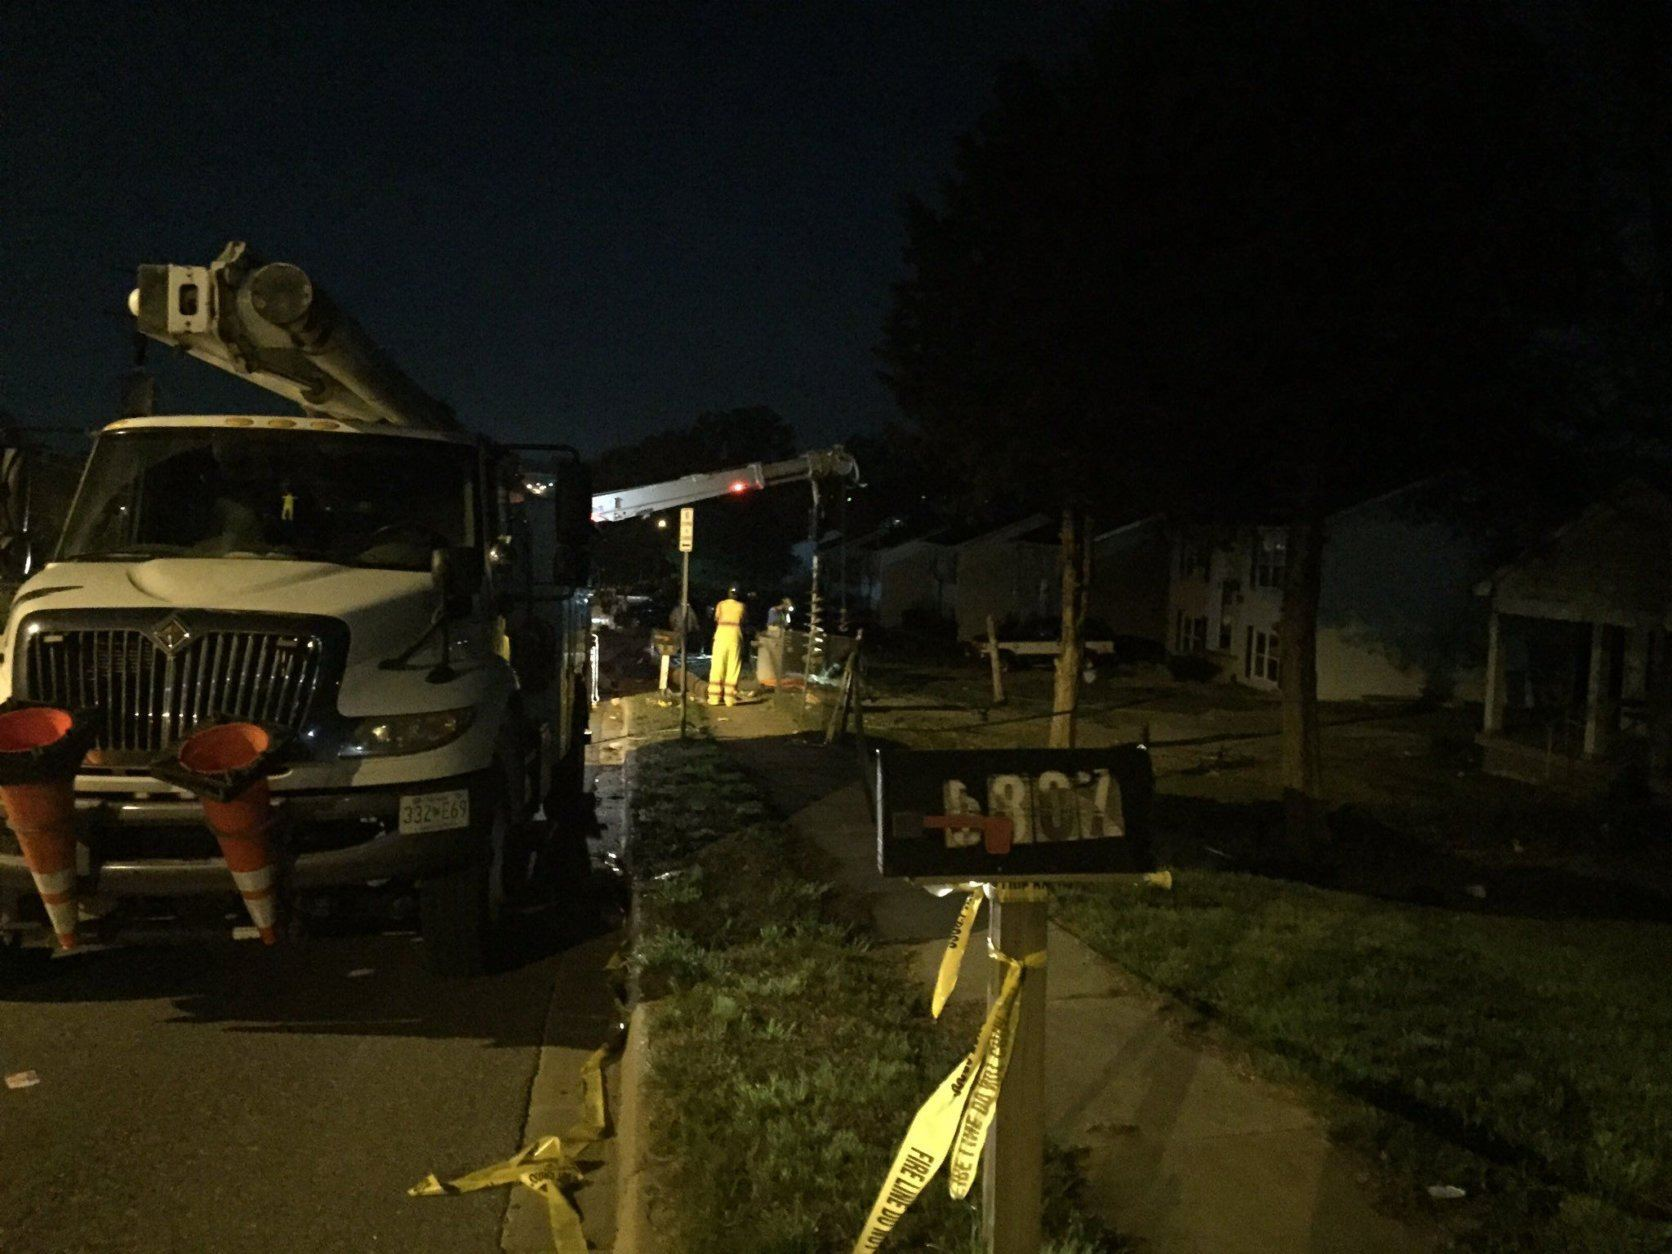 Pepco crews work to put in a new utility pole after a fatal crash in Prince George's County. (WTOP/John Domen)